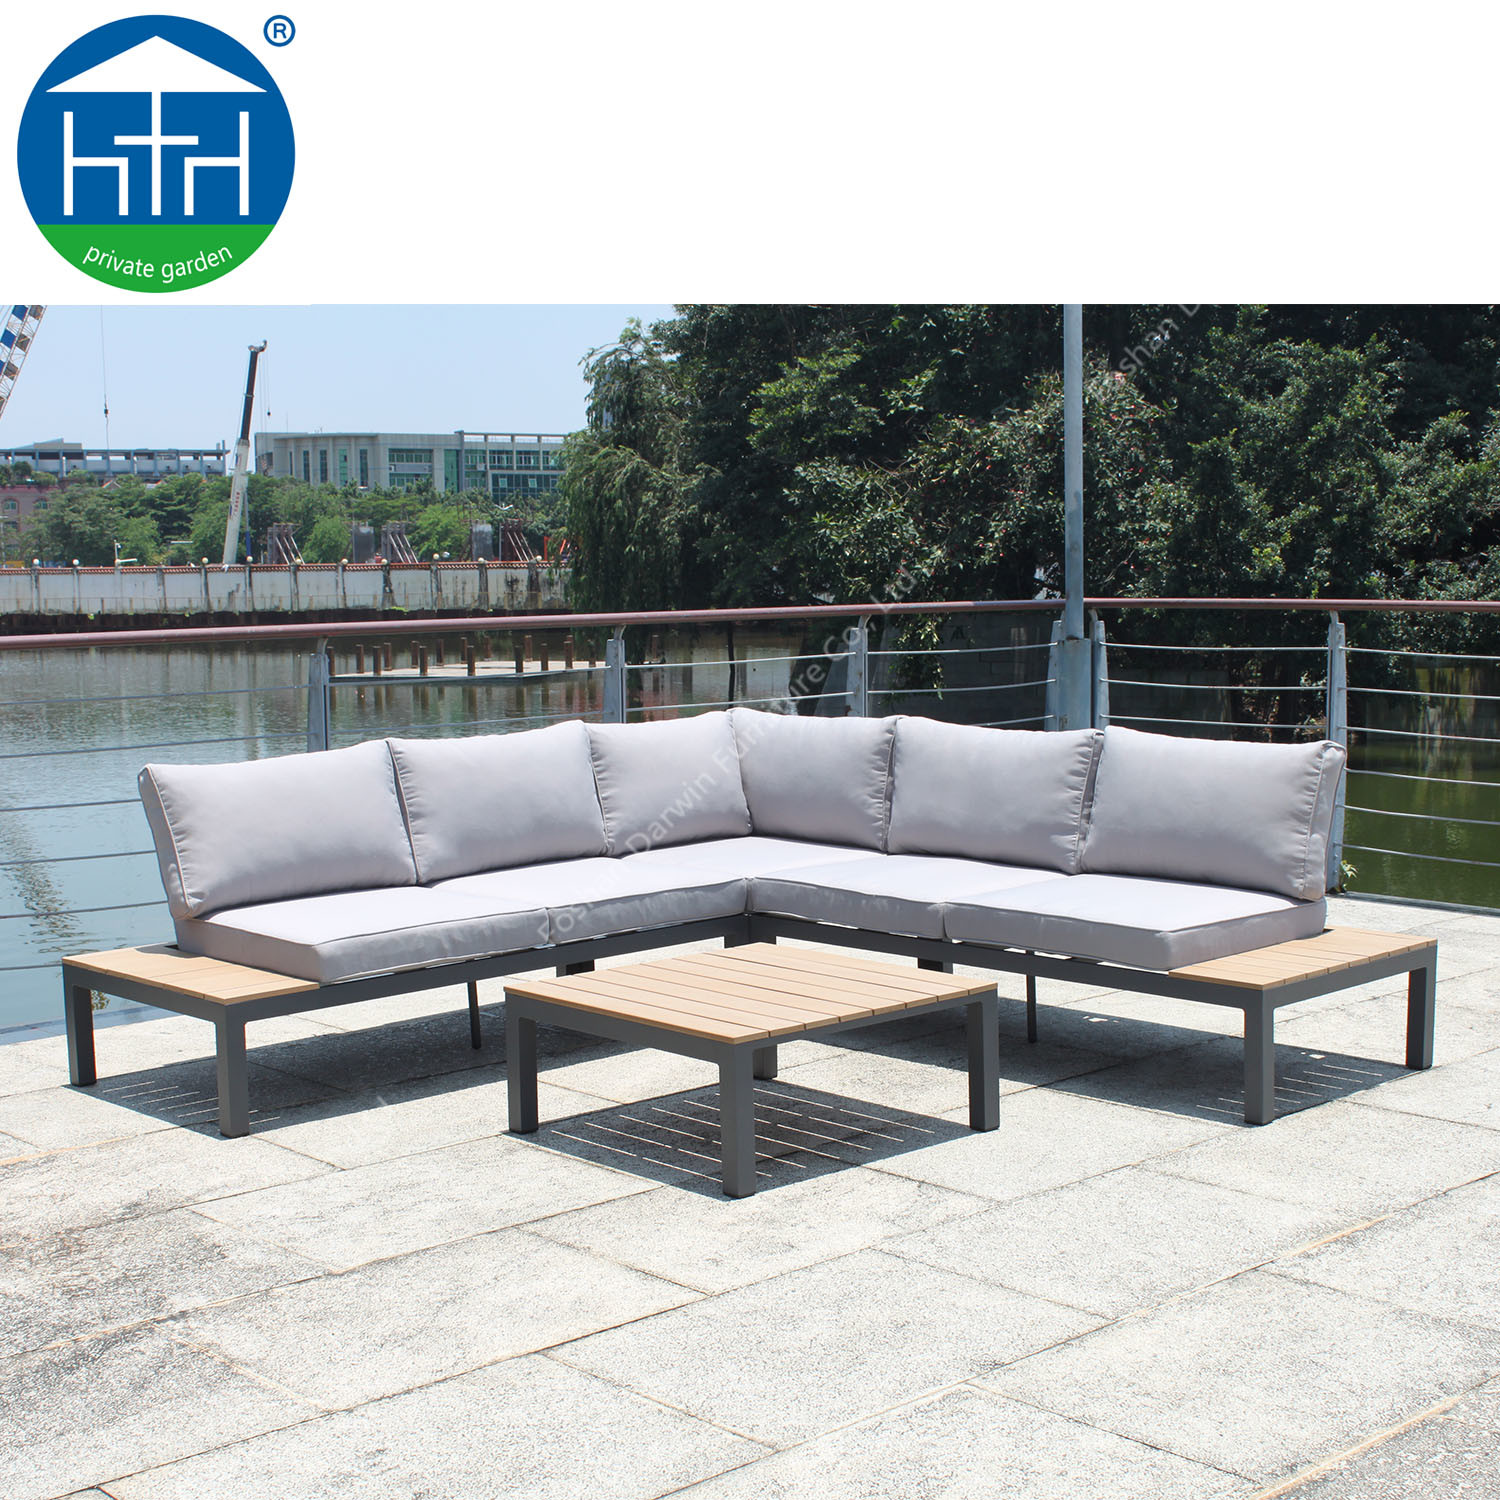 China Modular L Shape Sofa Patio Use Poly Wood Coffee Table Outdoor Garden Furniture China Sectional Outdoor Sofa Patio Sofa Lounge